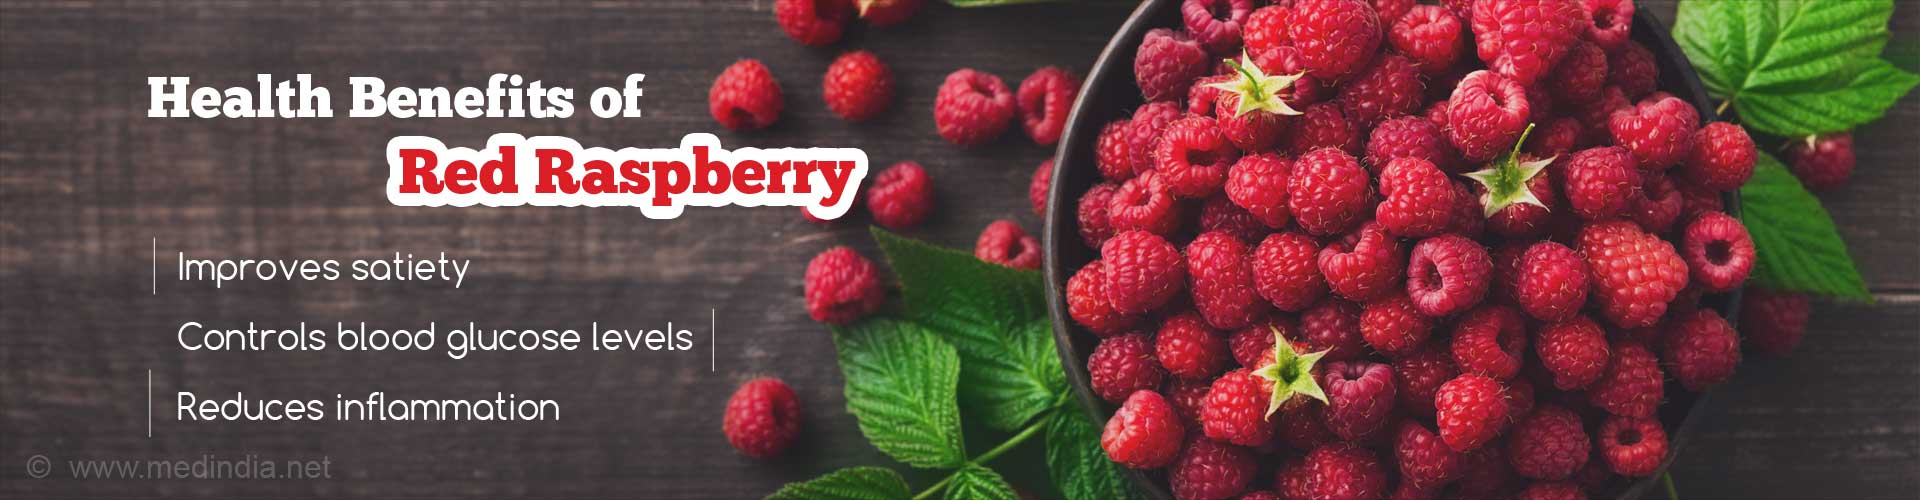 Red Raspberries - Improve Blood Glucose and Increase Satiety